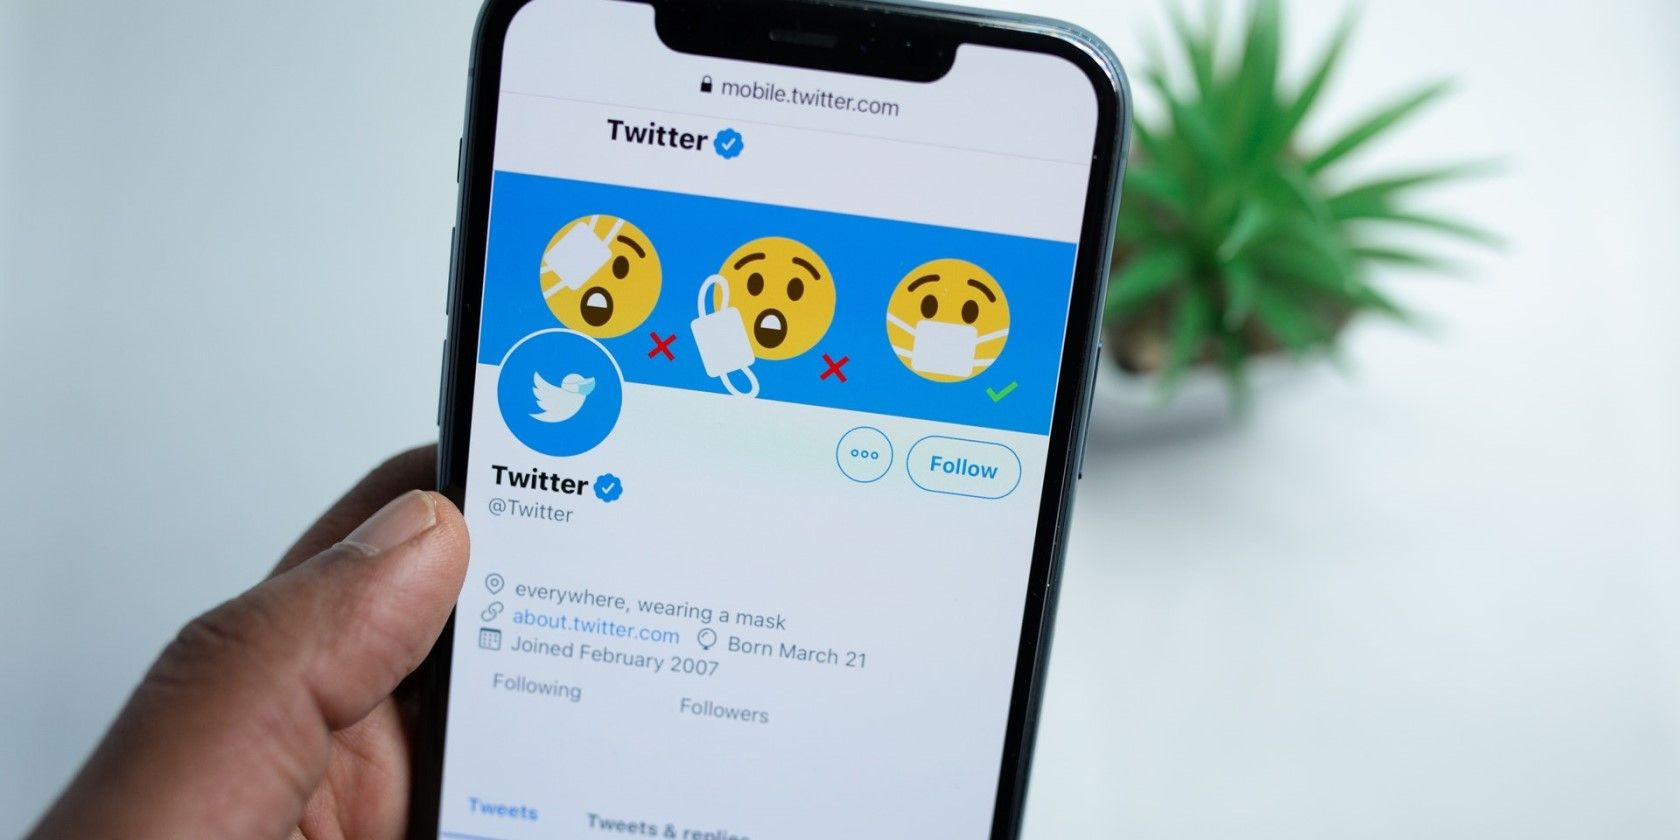 Twitter Bans Misleading Content About the COVID-19 Vaccine